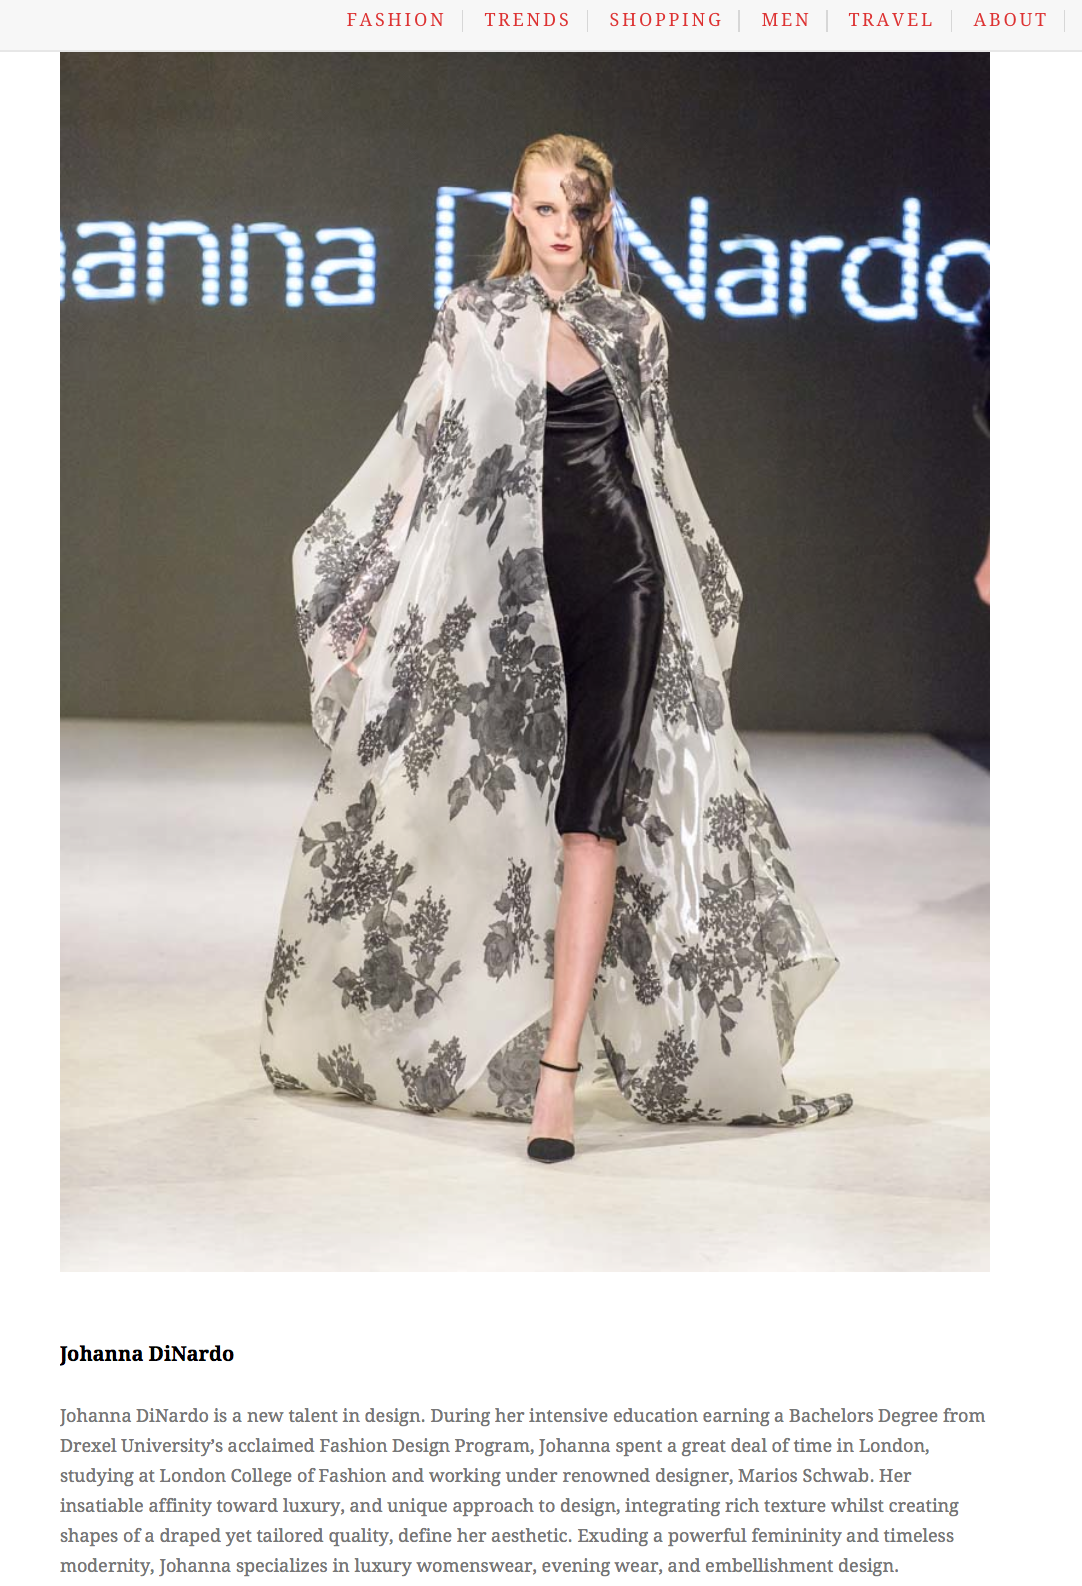 Top 10 Looks Vancouver Fashion Week